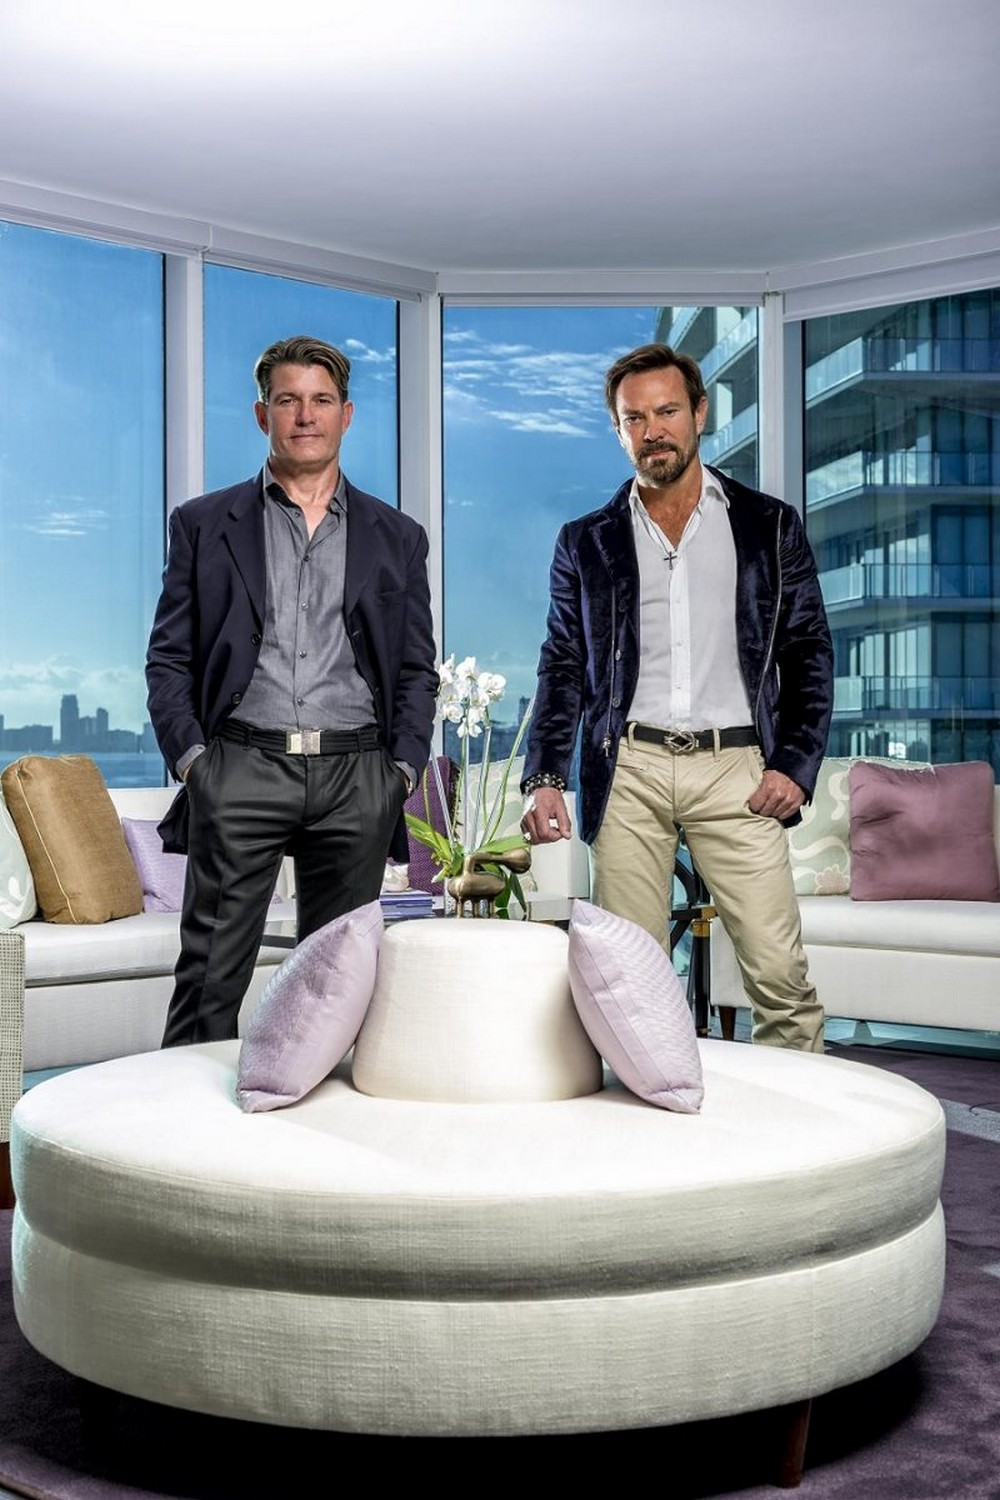 Create An Exotic Design Project With Miami's Best Interior Designers miami's best interior designers Create An Exotic Design Project With Miami's Best Interior Designers Create An Exotic Design Project With Miamis Best Interior Designers 6